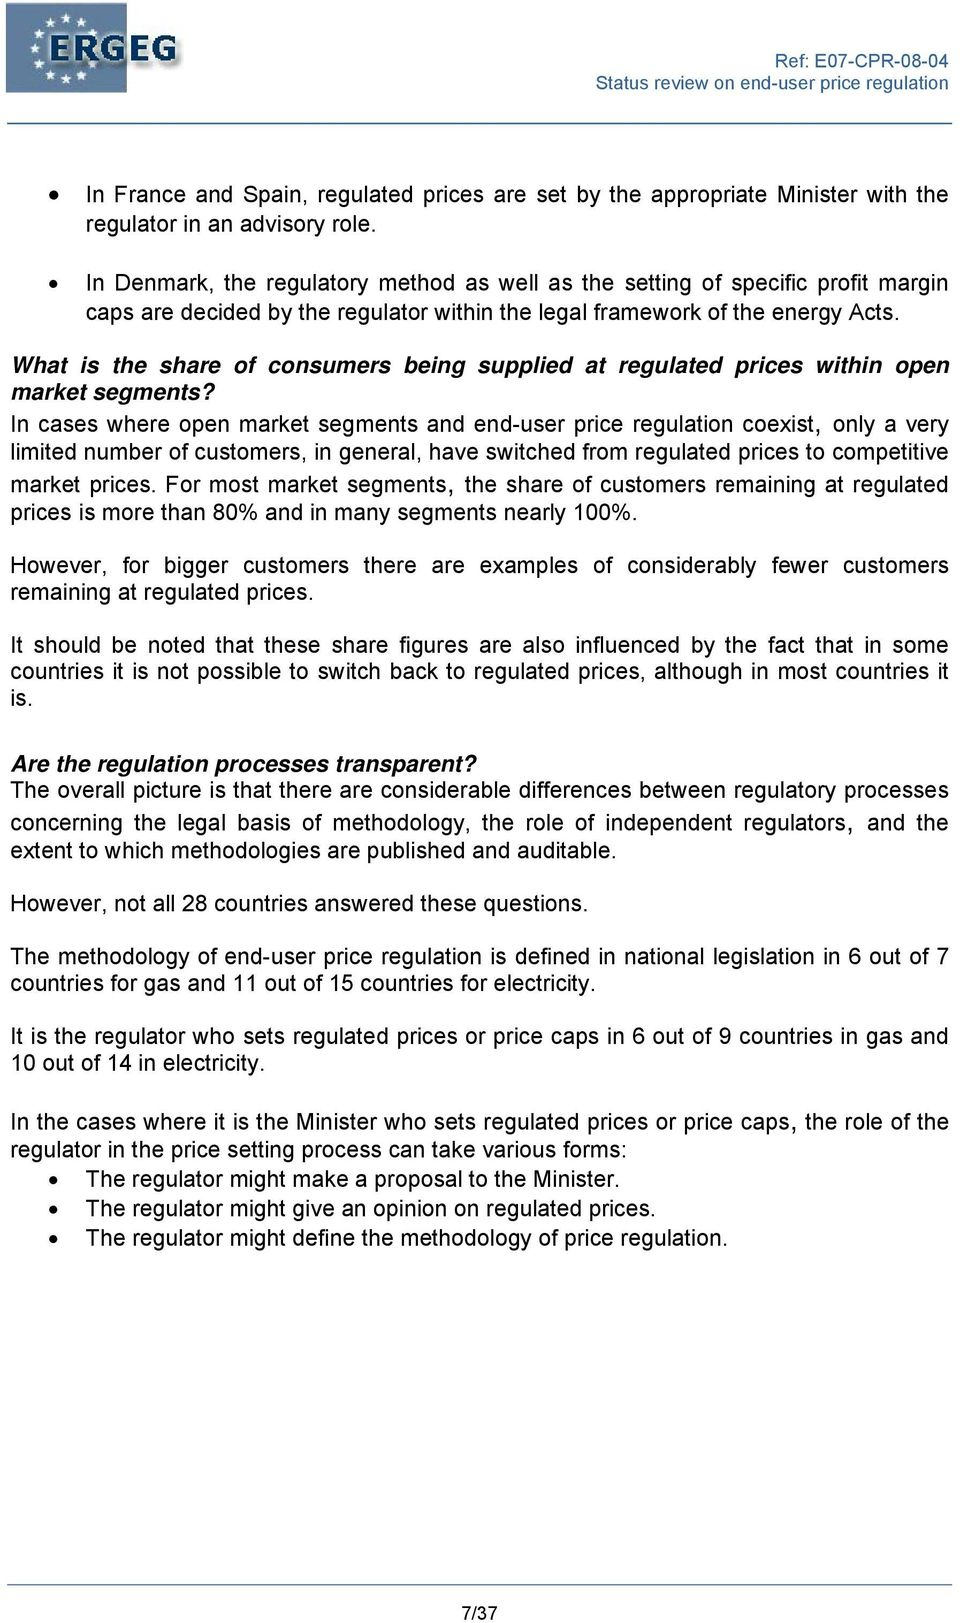 What is the share of consumers being supplied at regulated prices within open market segments?